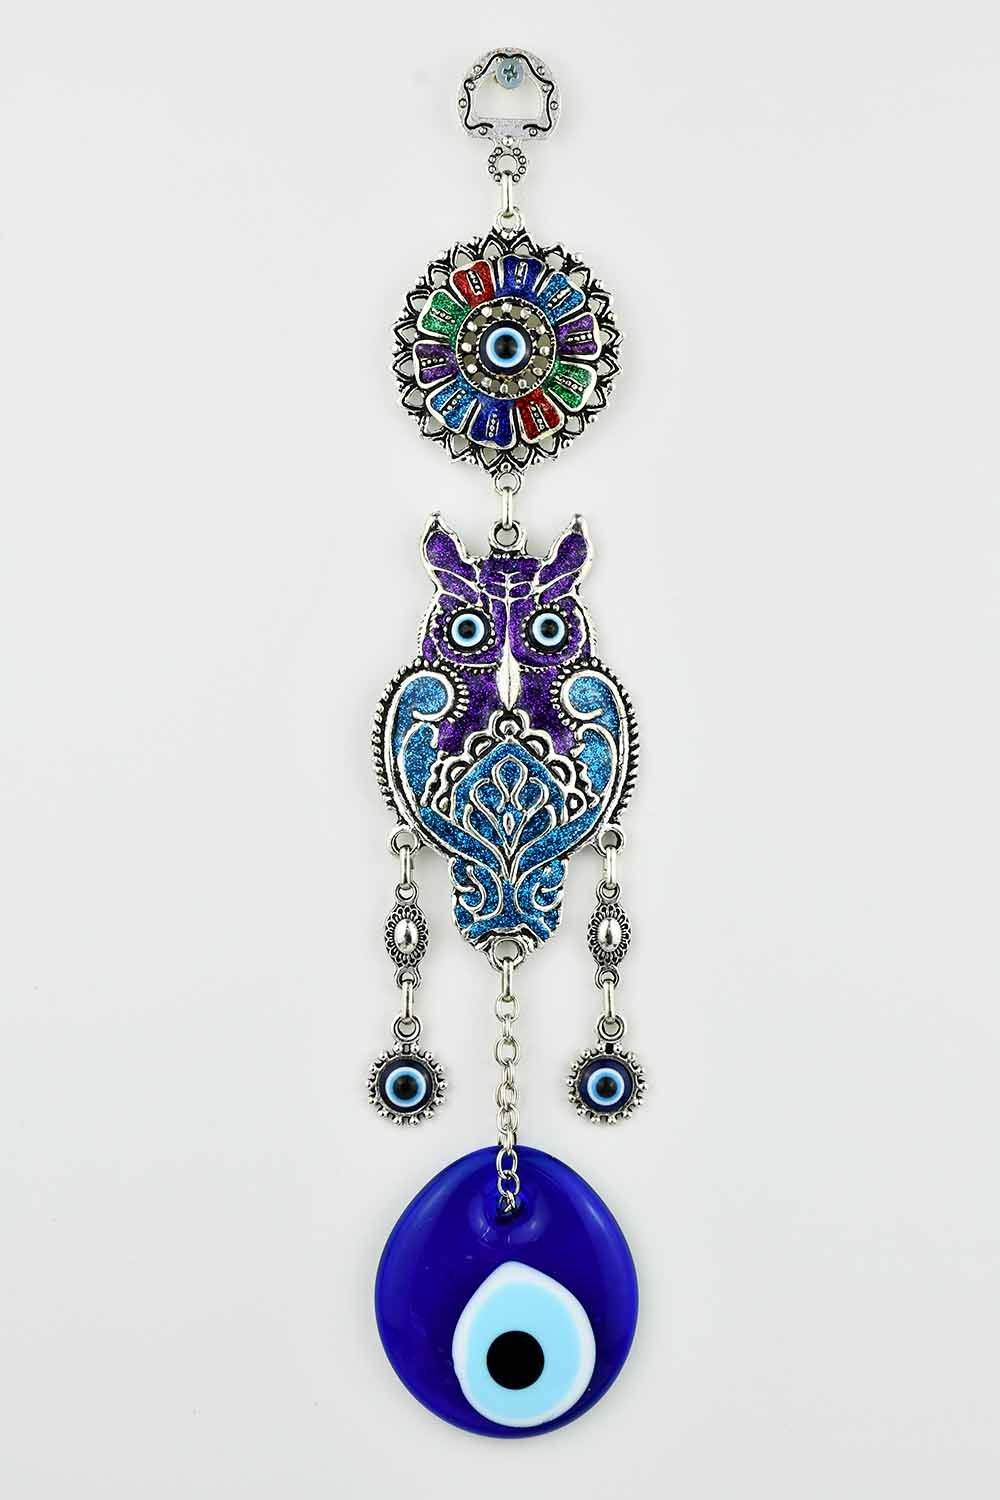 Evil Eye Ornament Owl Design Medium #6 Evil Eye Sydney Grand Bazaar